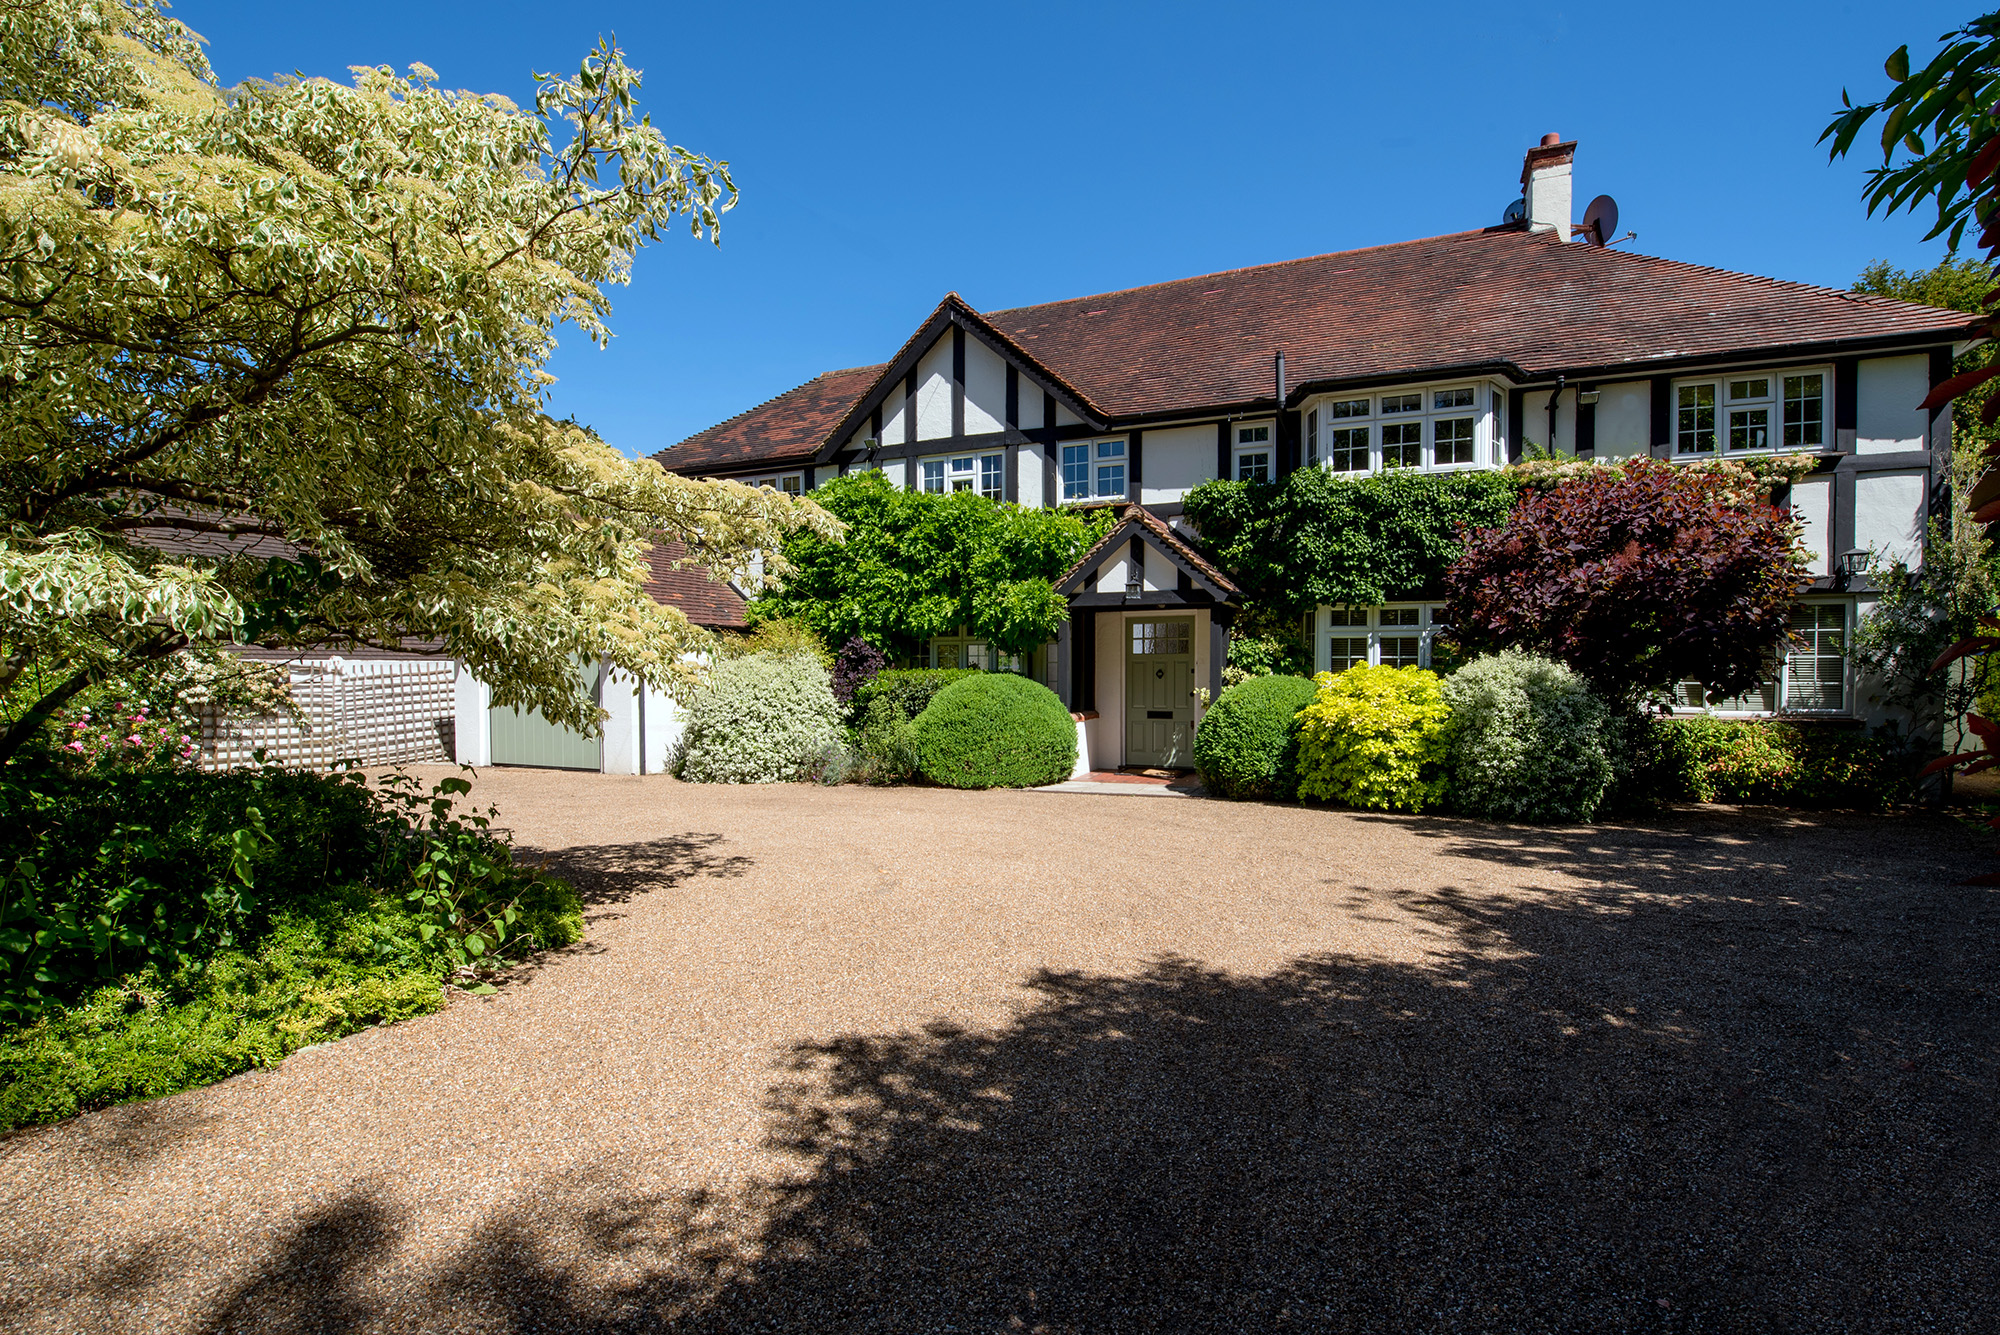 Dog-friendly cottage with swimming pool  in Home Counties